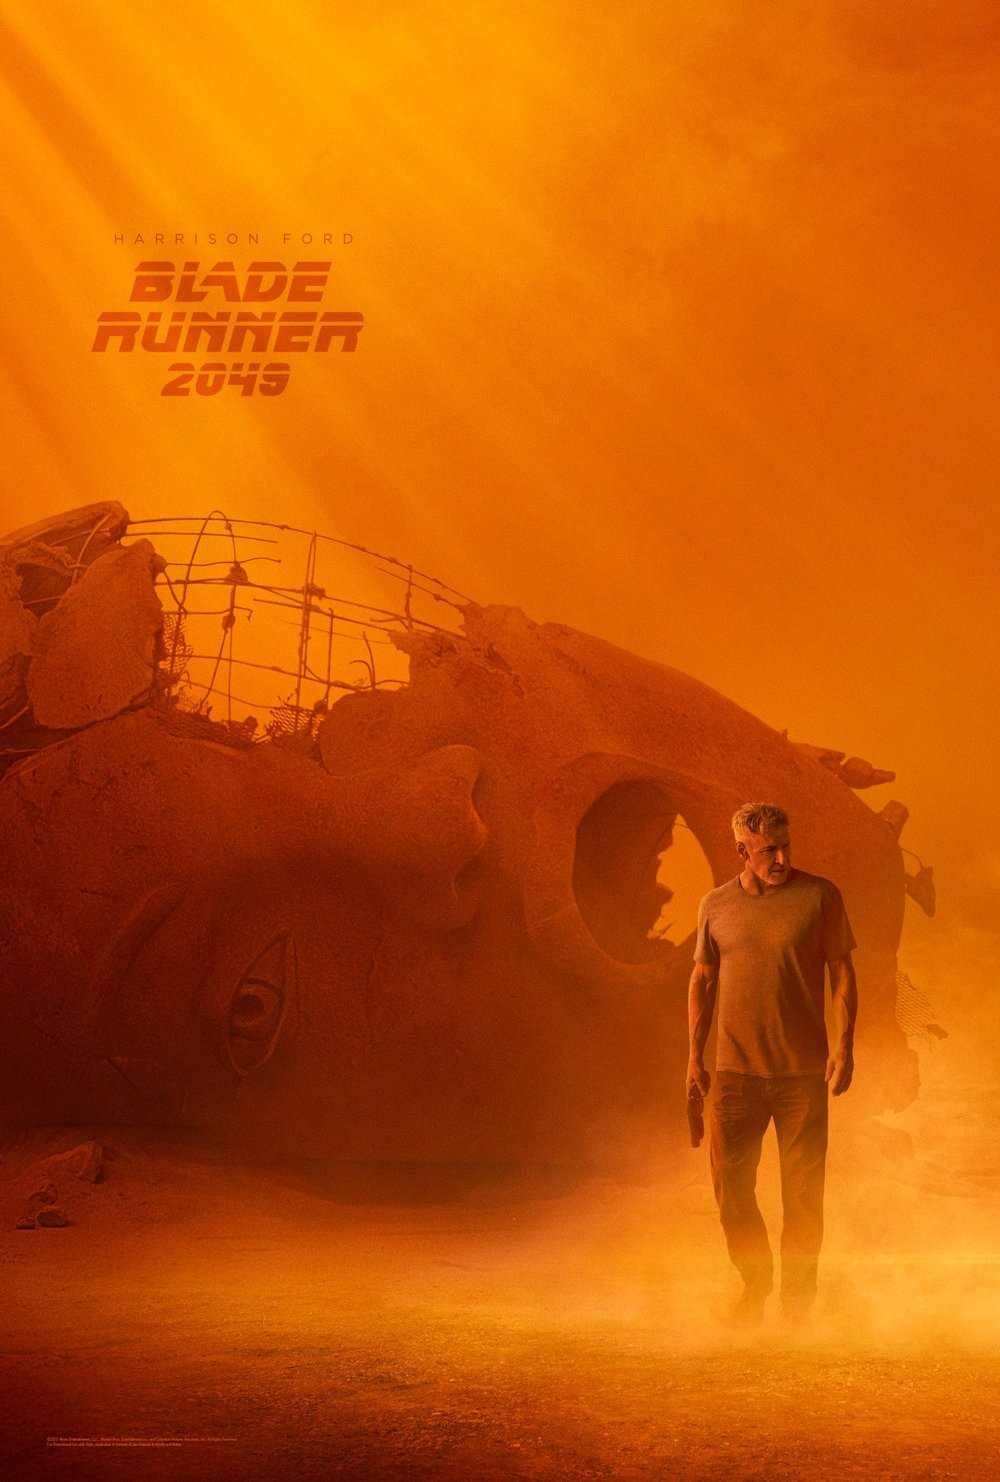 blade-runner-2049-poster-harrison-ford.jpeg